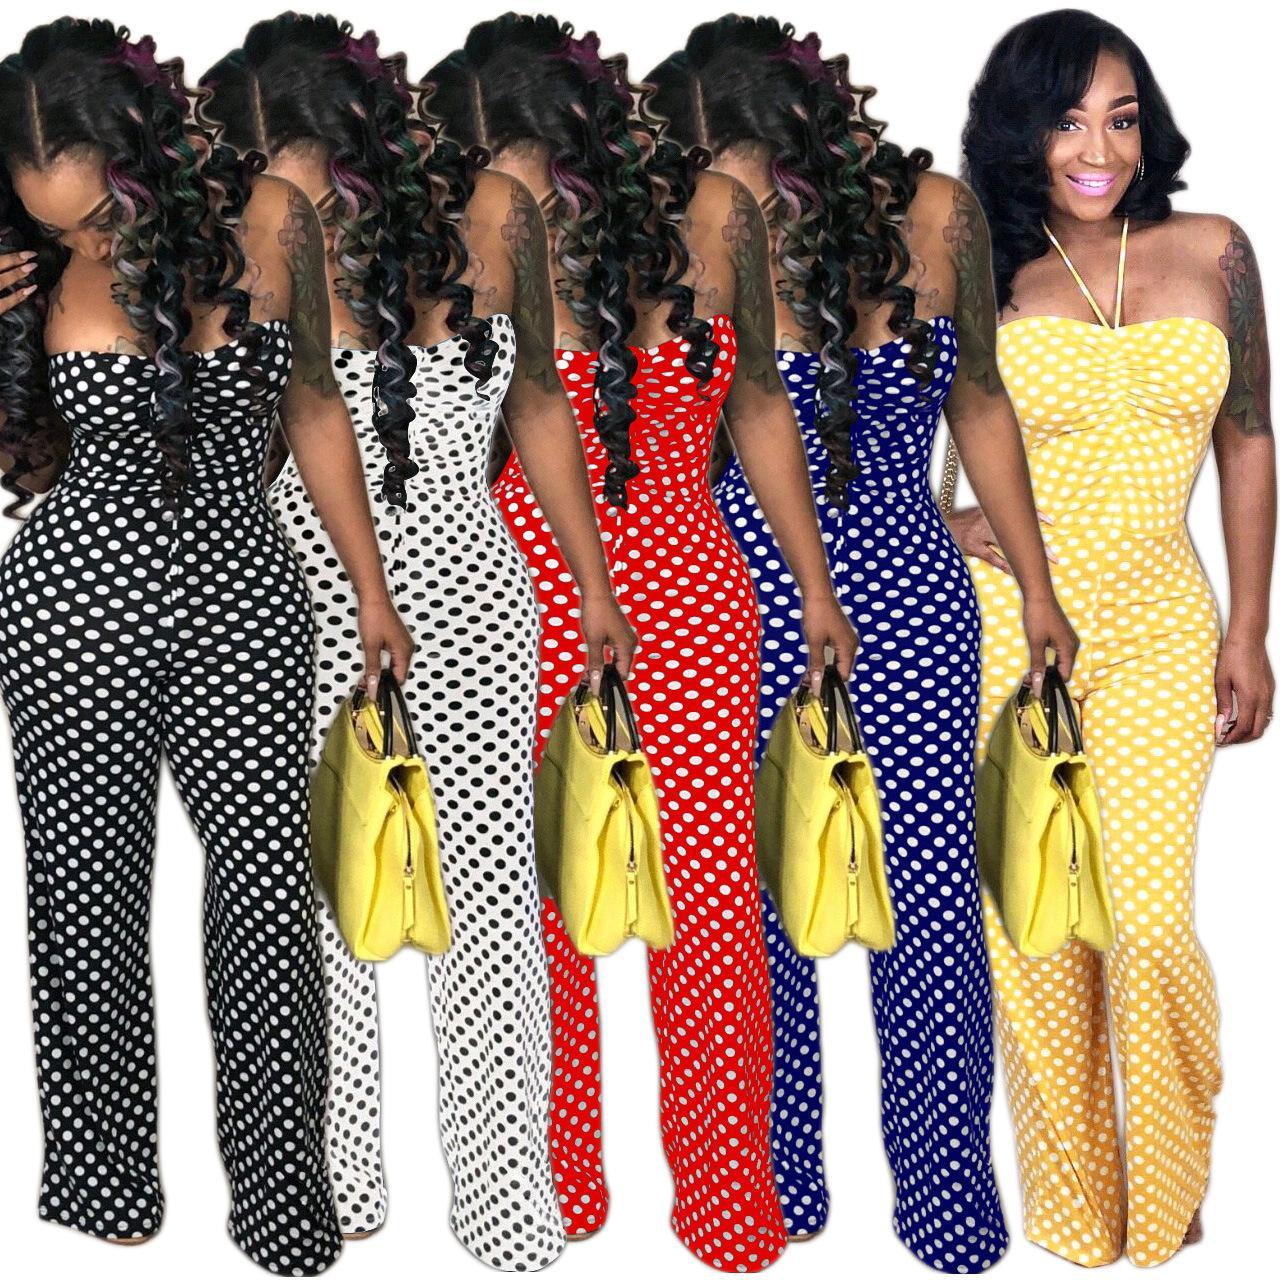 f8e9de63610b 2019 Women Polka Dot Strapless Jumpsuits Stretchy Chest Wrap Wide Leg Casual  Long Print Party Jumpsuit Romper Sexy Club Wear From Hengytrade